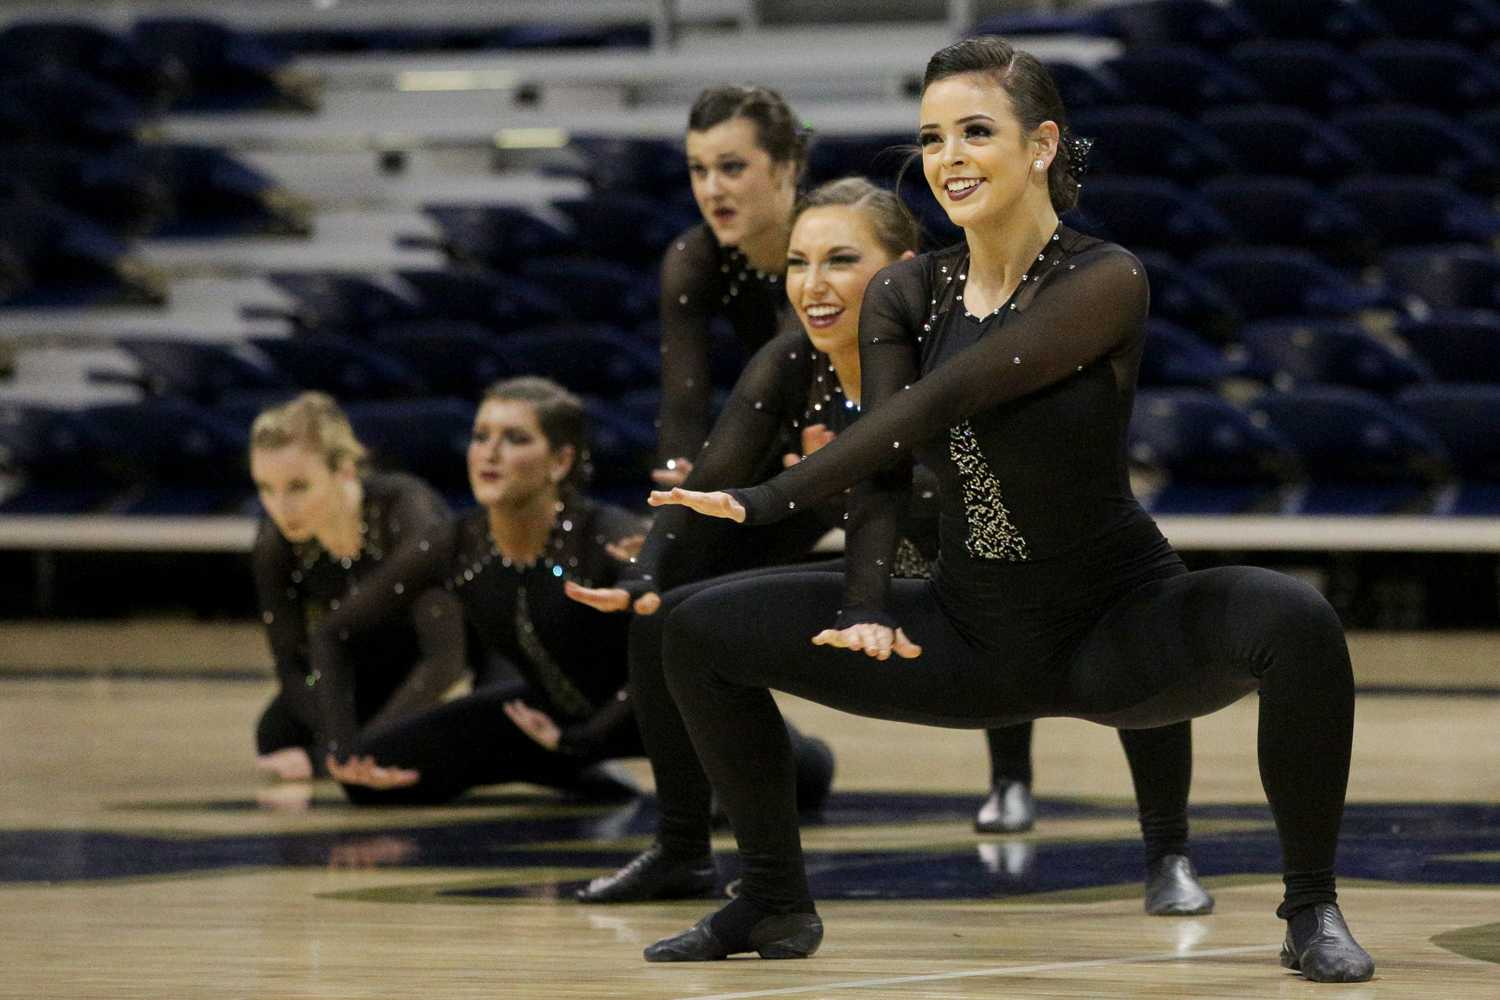 The Pitt dance team will travel to Daytona, Florida, to compete in the NDA Collegiate Dance Championship. (Photo by Thomas Yang | Visual Editor)